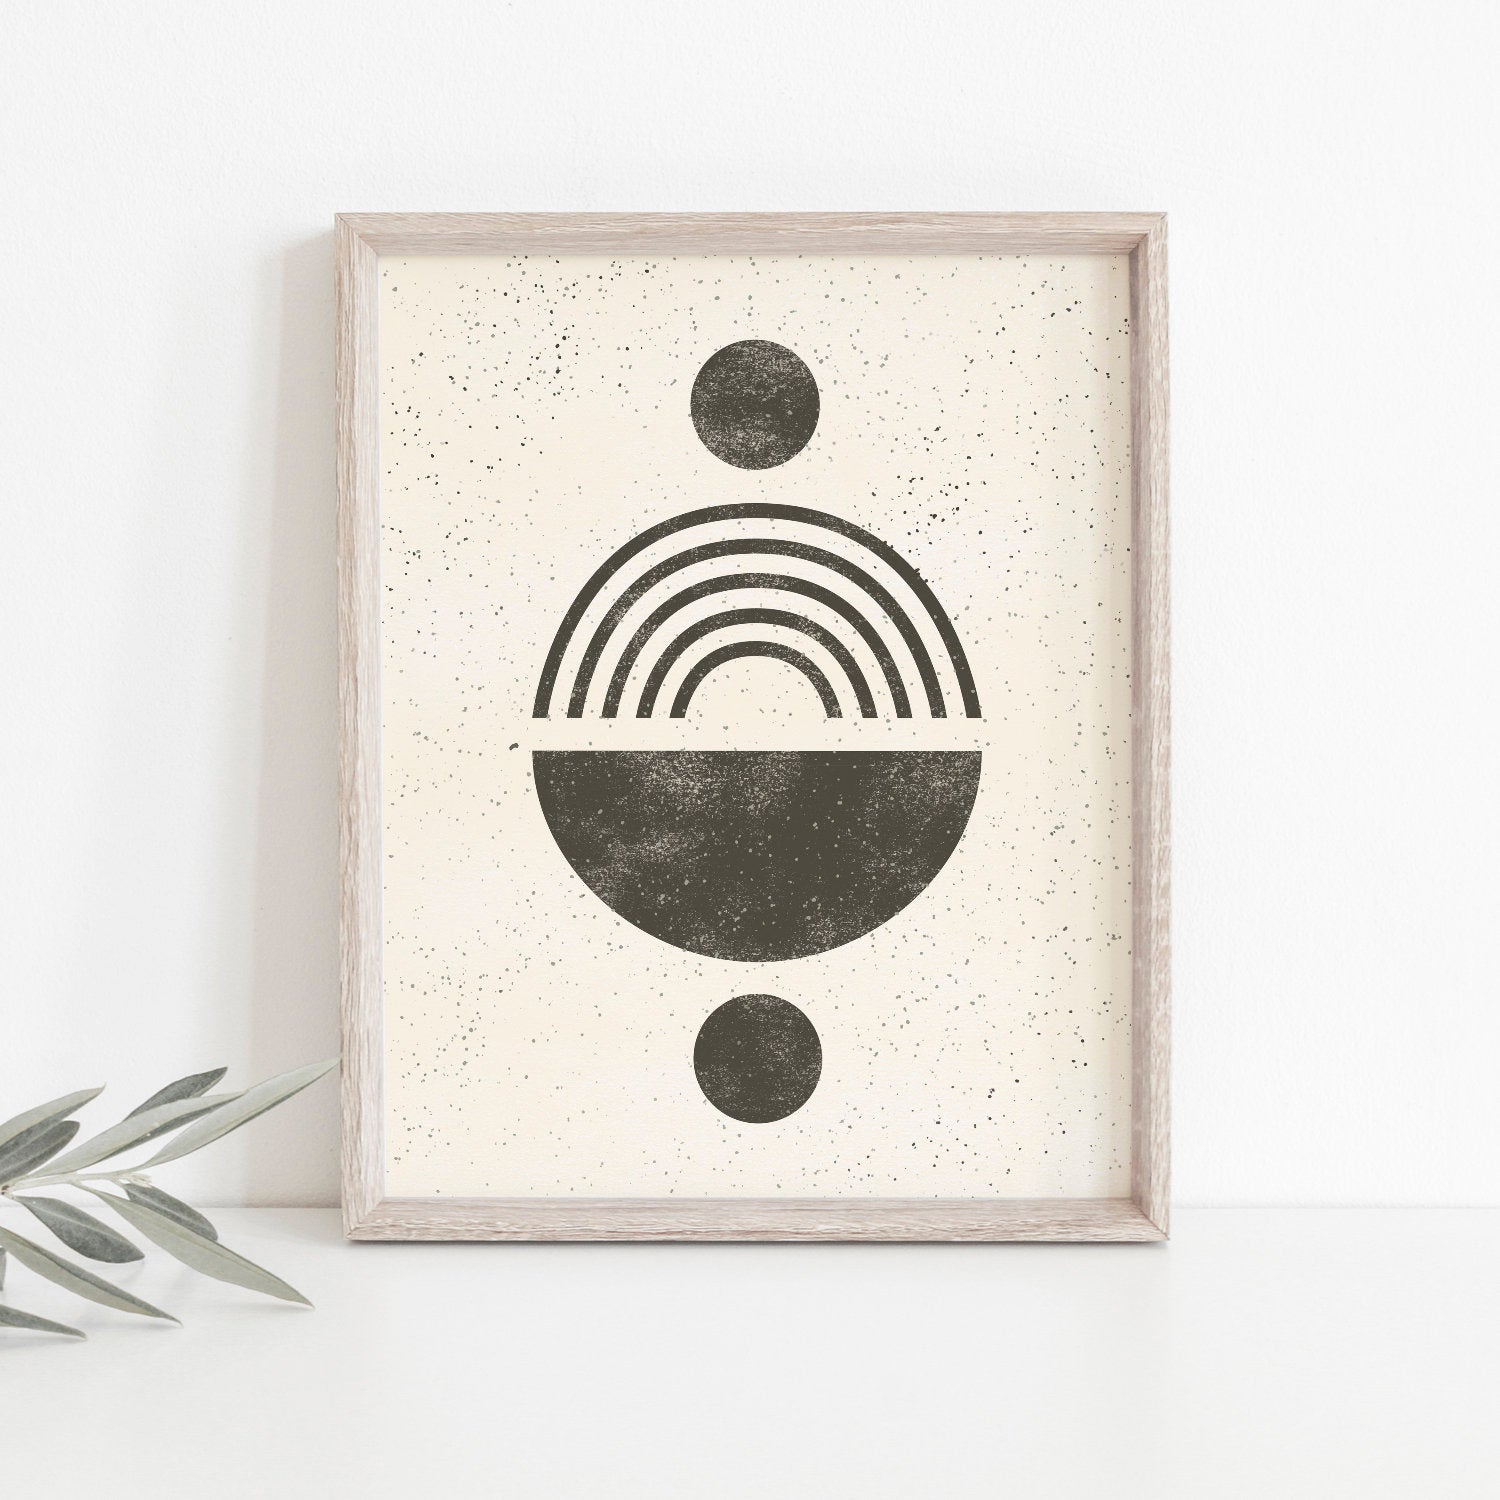 Totem Shapes Wall Art Print - Black on Cream | Modern Wall Art | Geometric Art Print | Minimalist Art | Black Art | 5x7 8x10 11x14